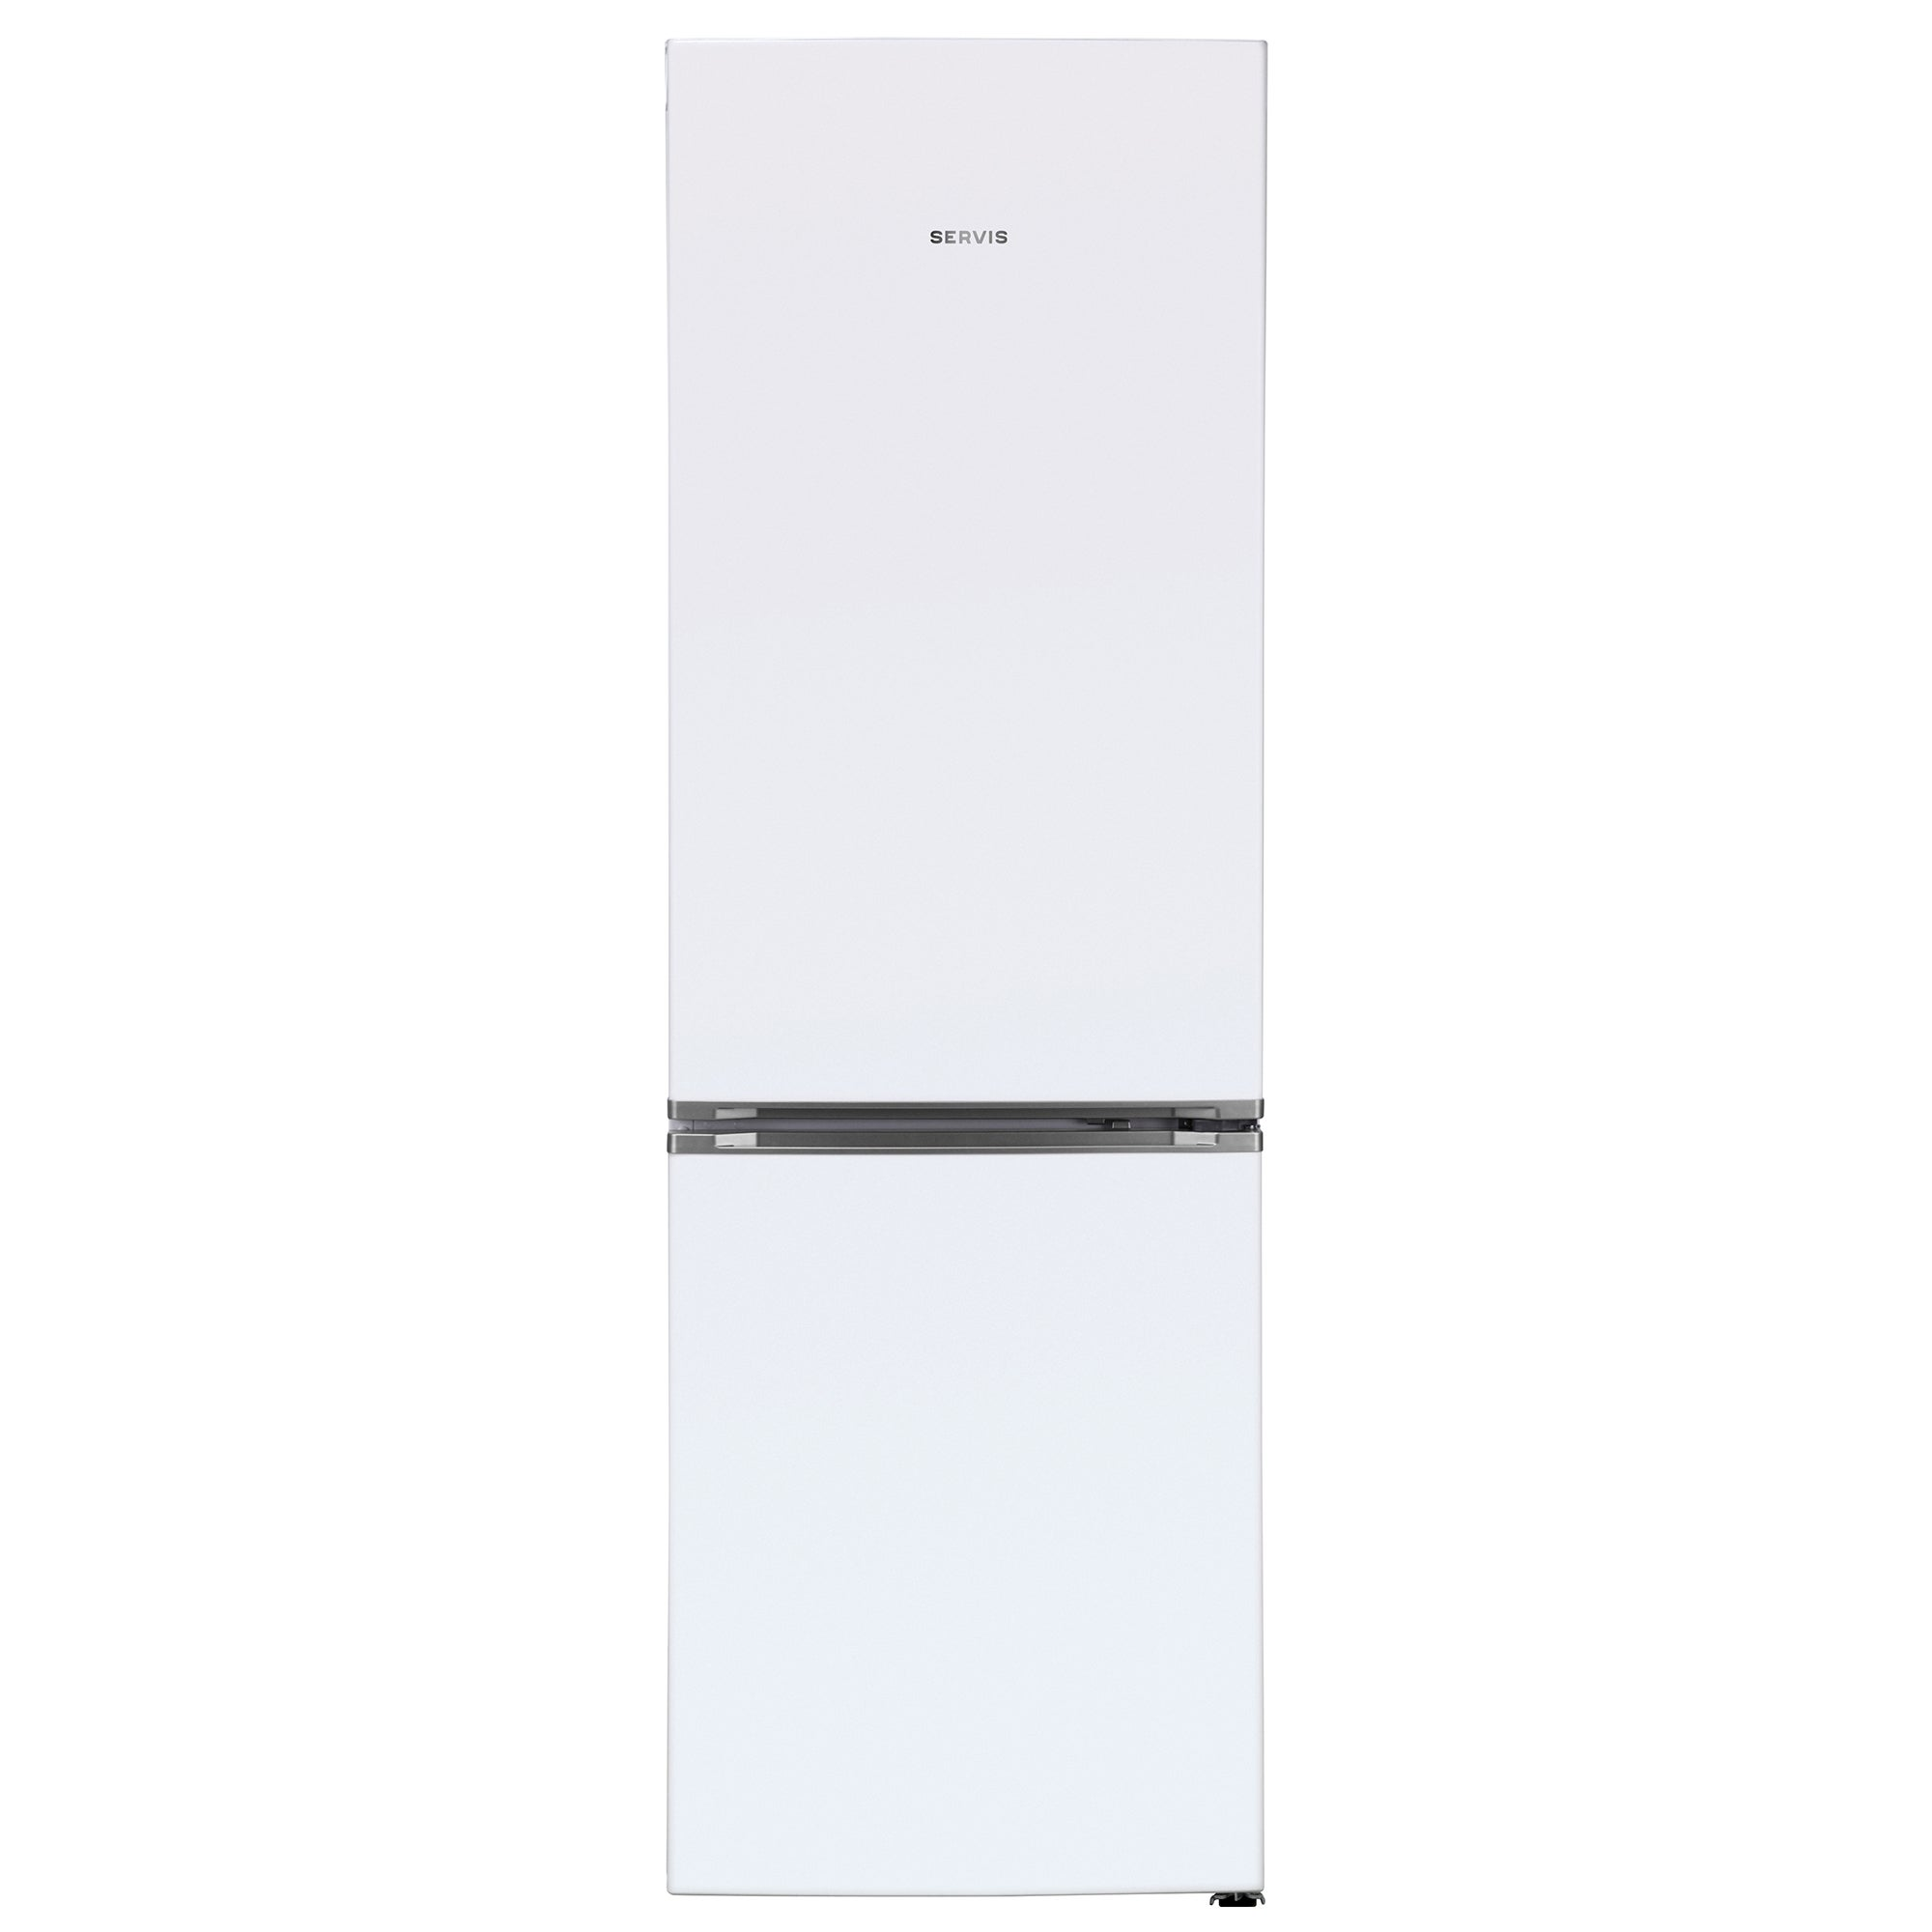 Servis CF60185W White Combi Fridge Freezer White